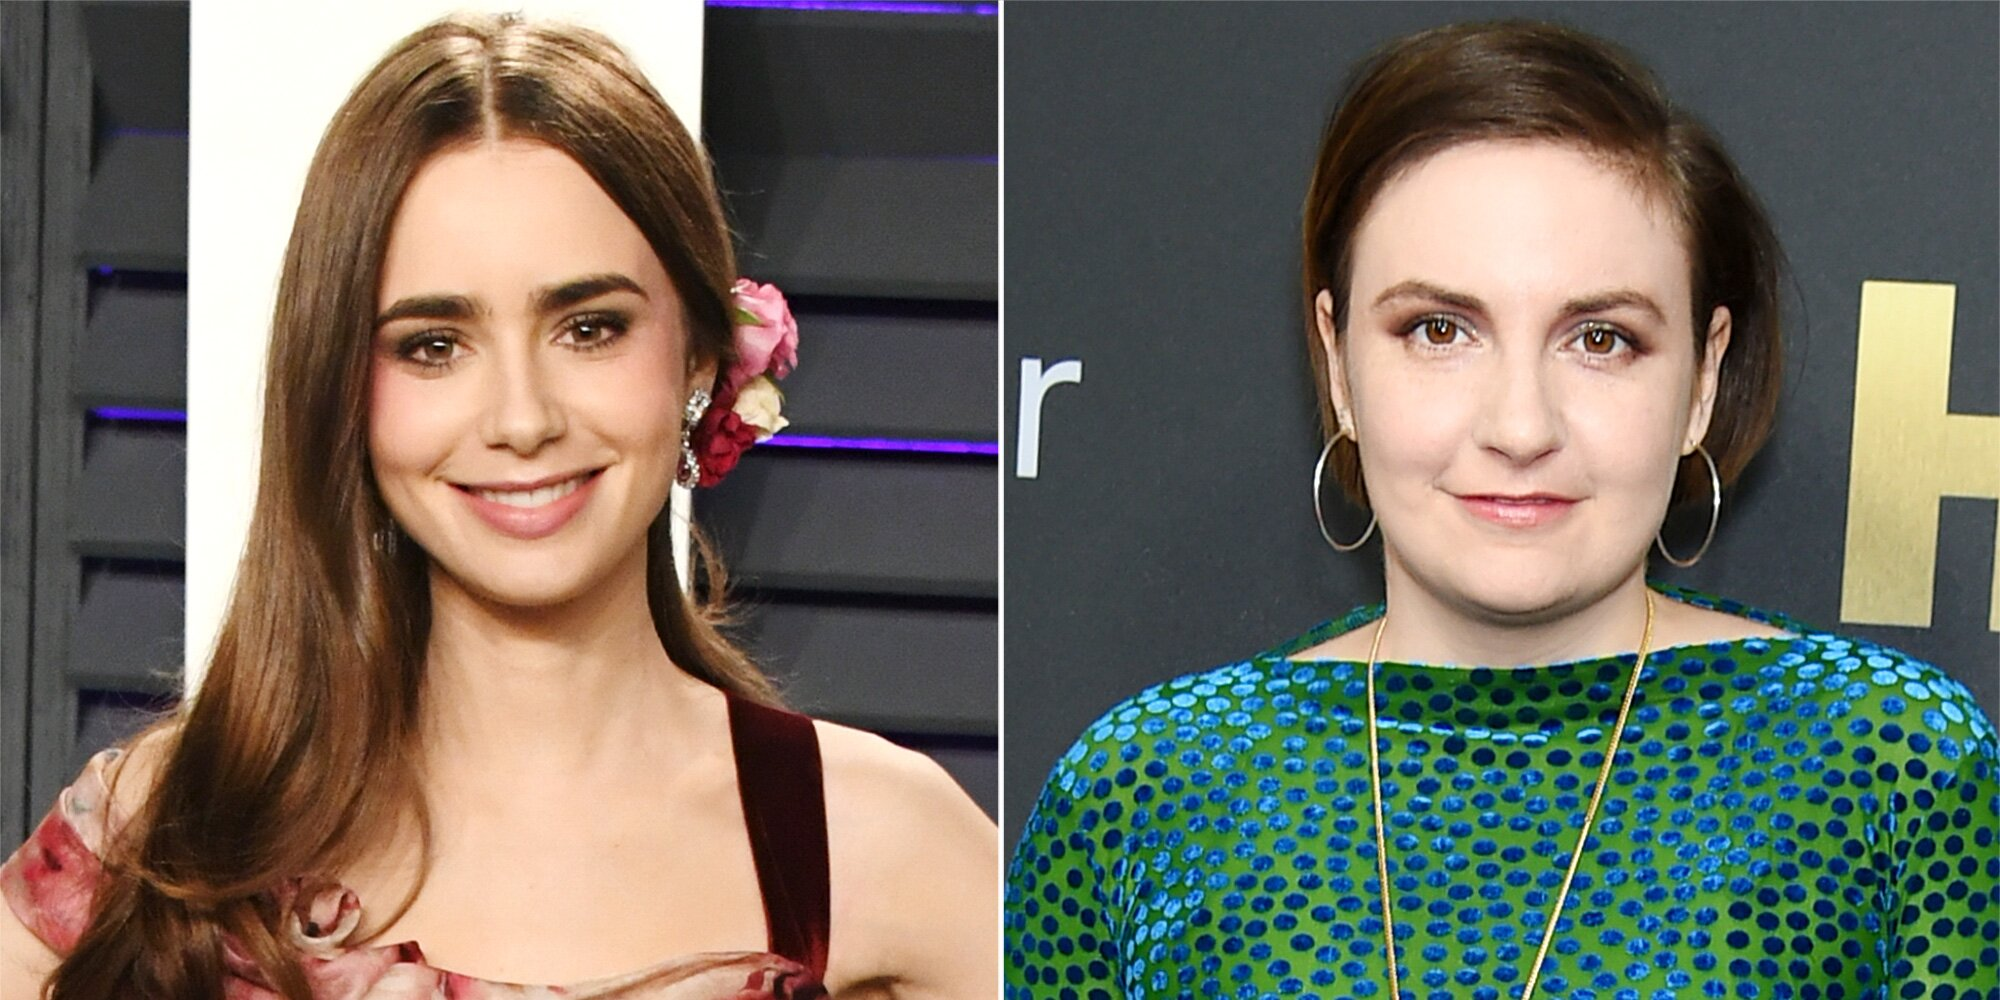 Lily Collins to star as live-action Polly Pocket in movie directed by Lena Dunham